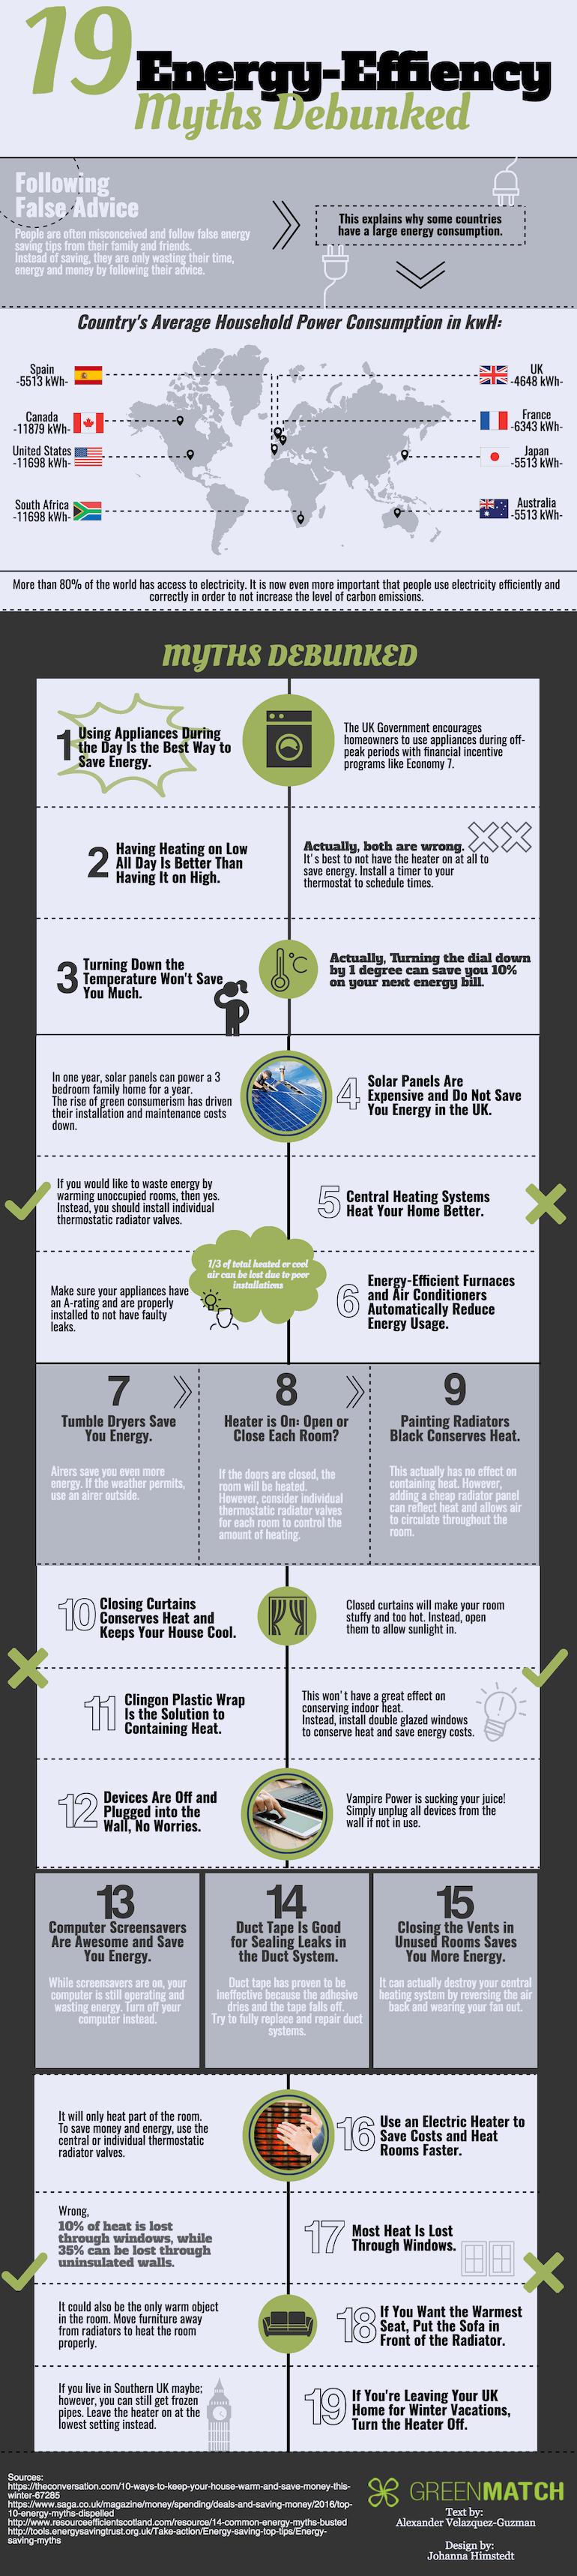 Energy Efficiency Myths Infographic